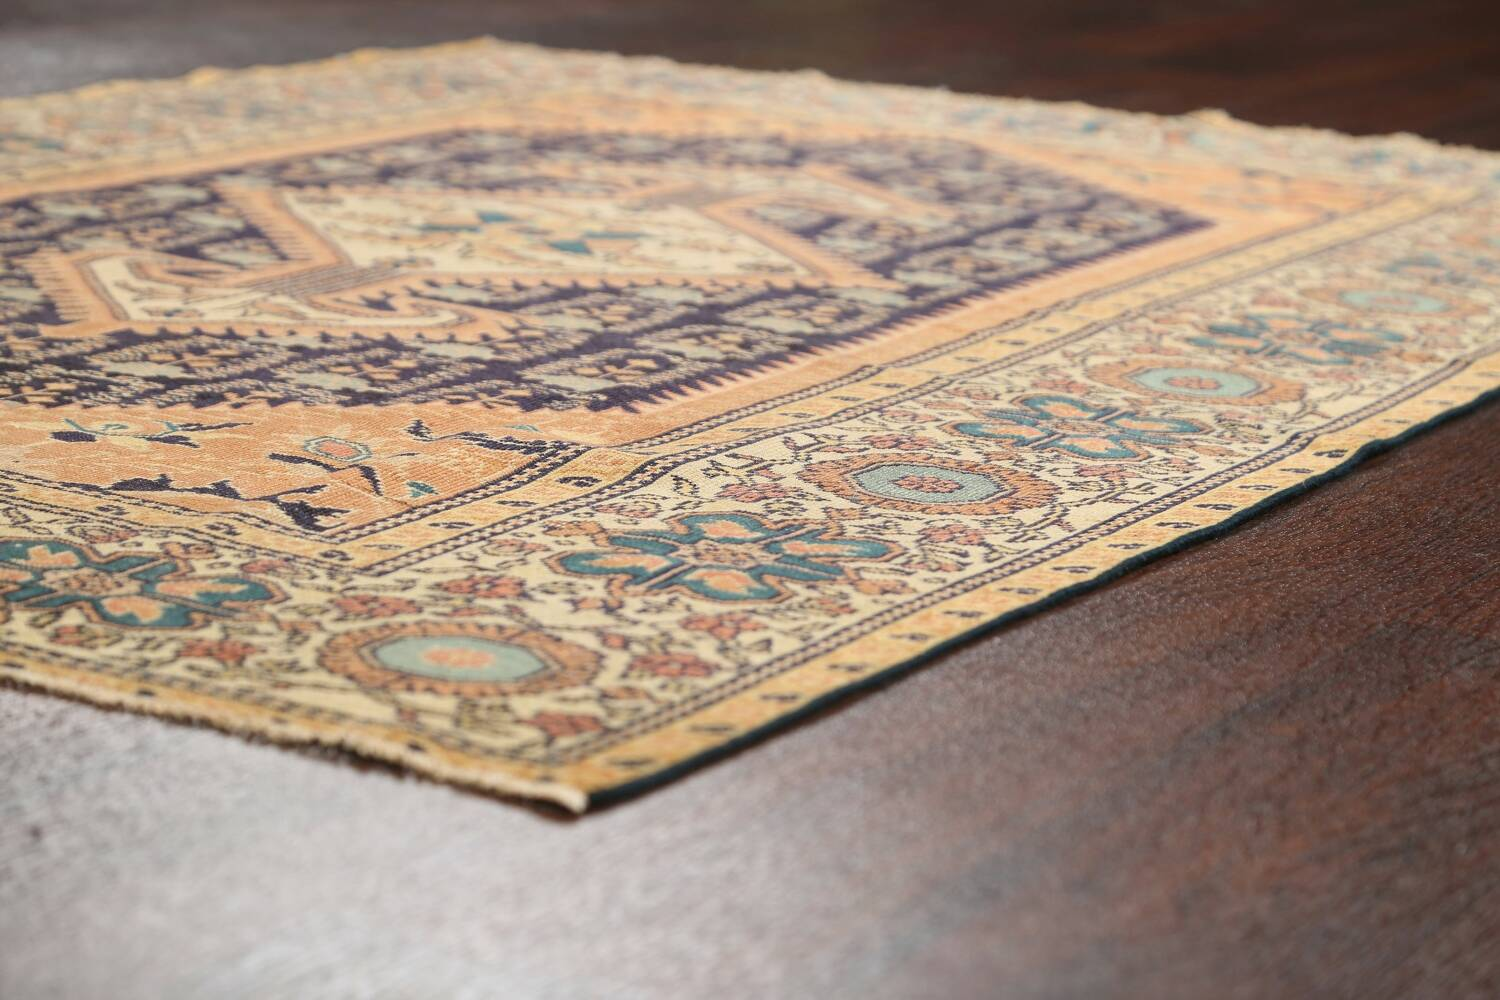 Antique 100% Vegetable Dye Sultanabad Persian Area Rug 4x5 image 6